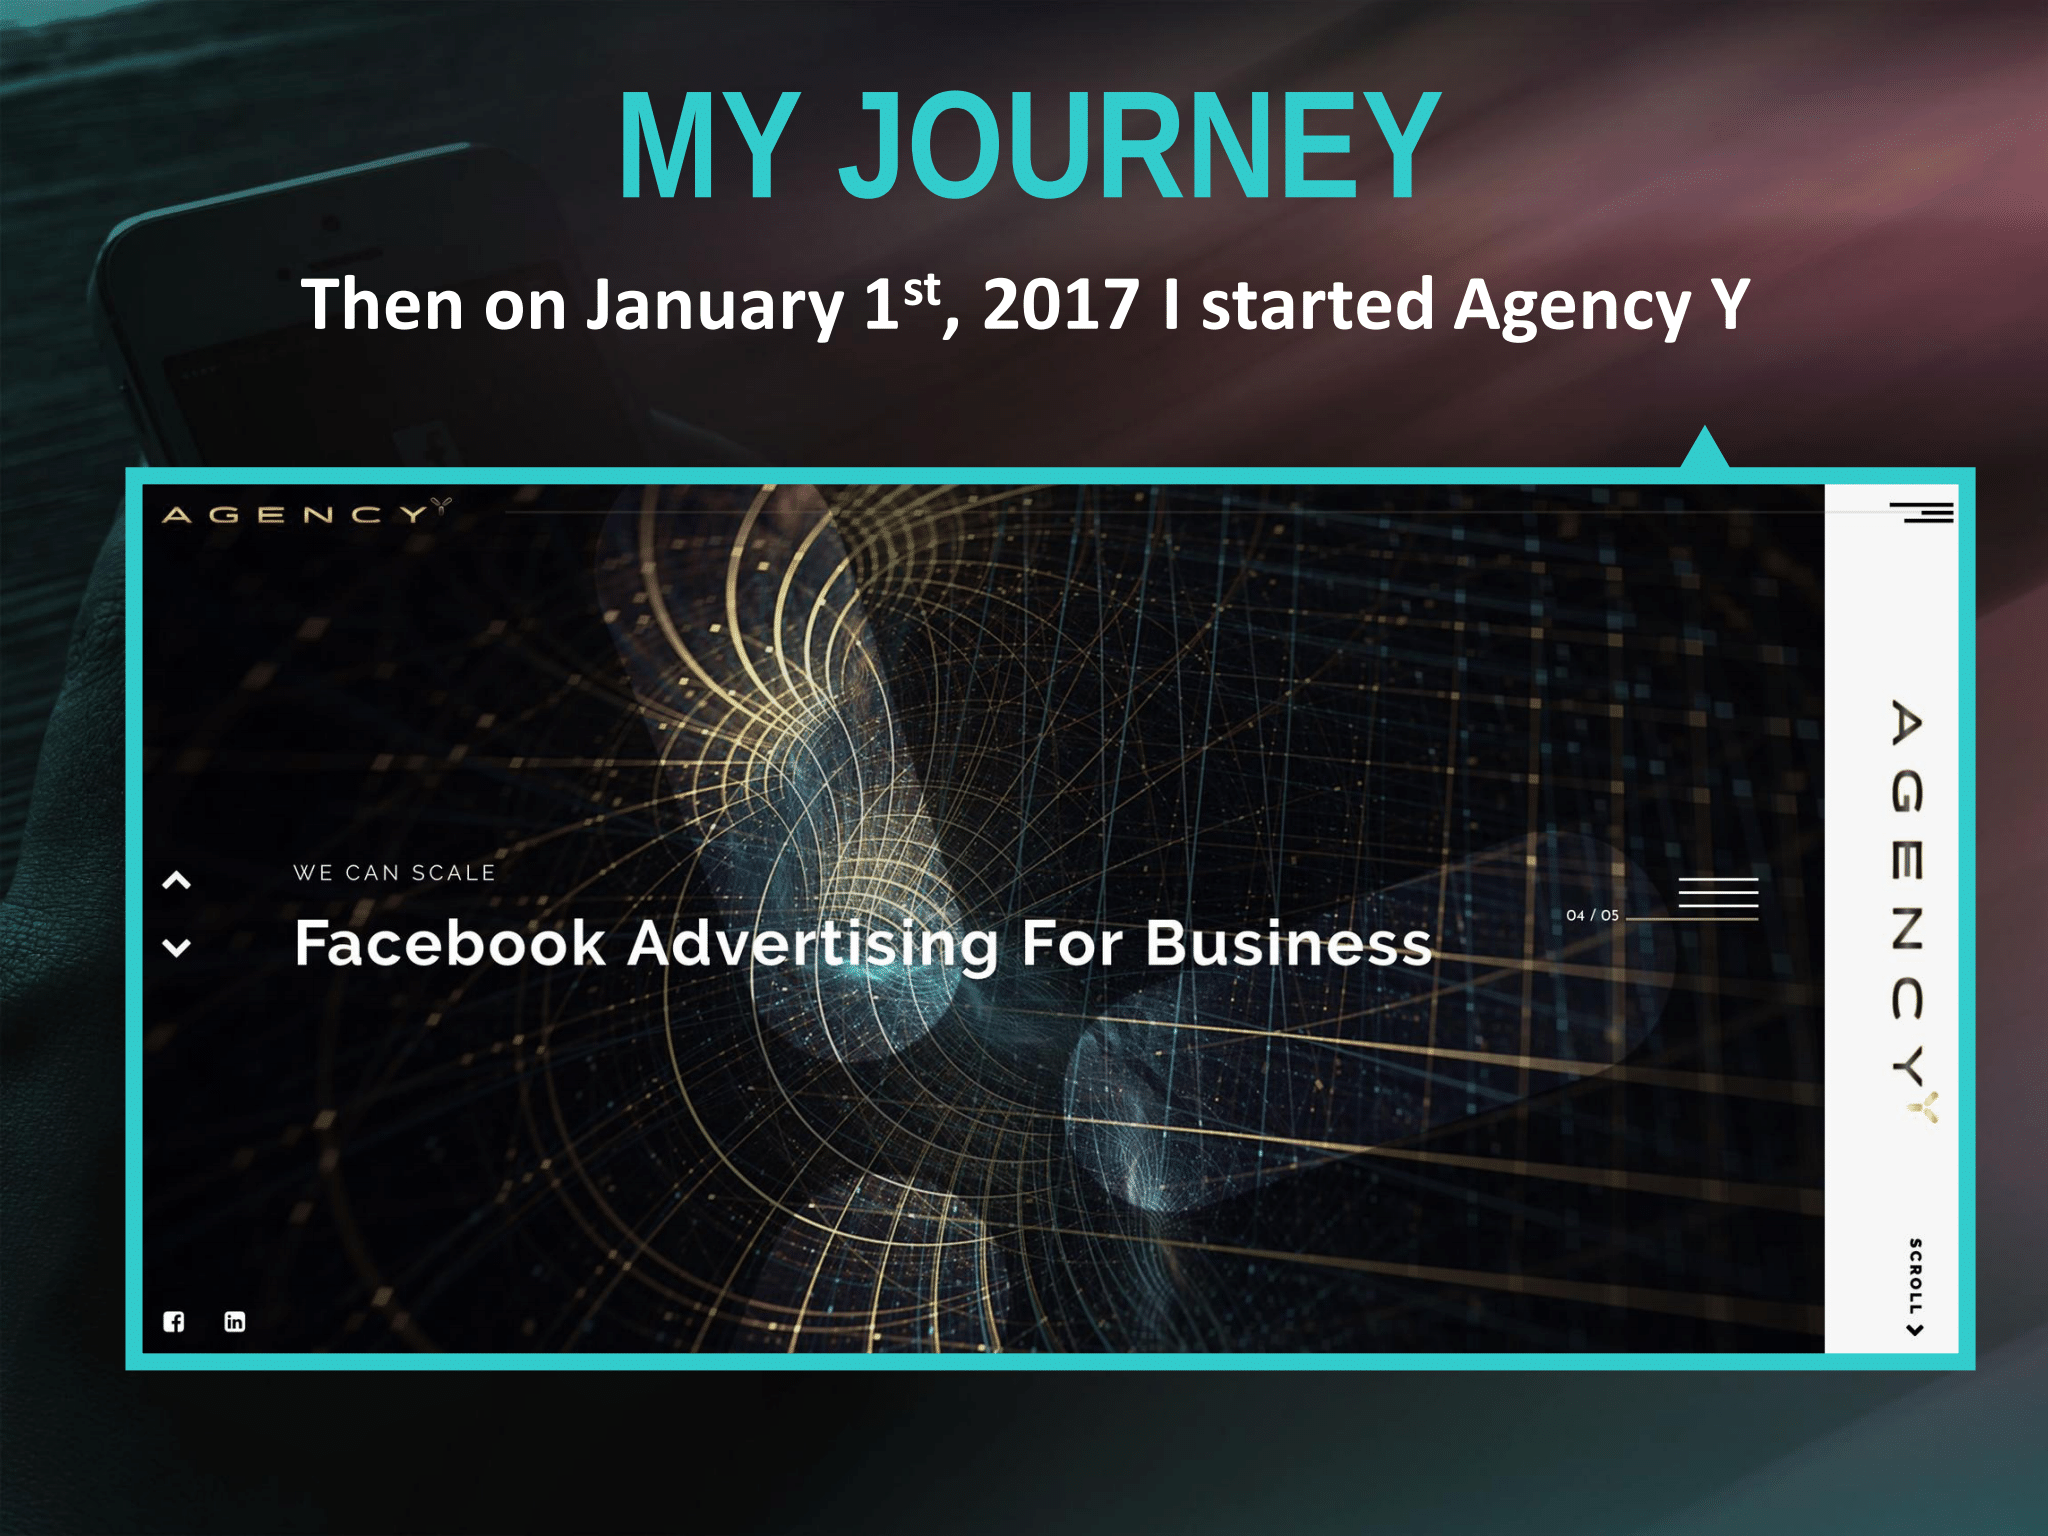 Tim Burd – Facebook Advertising For Business